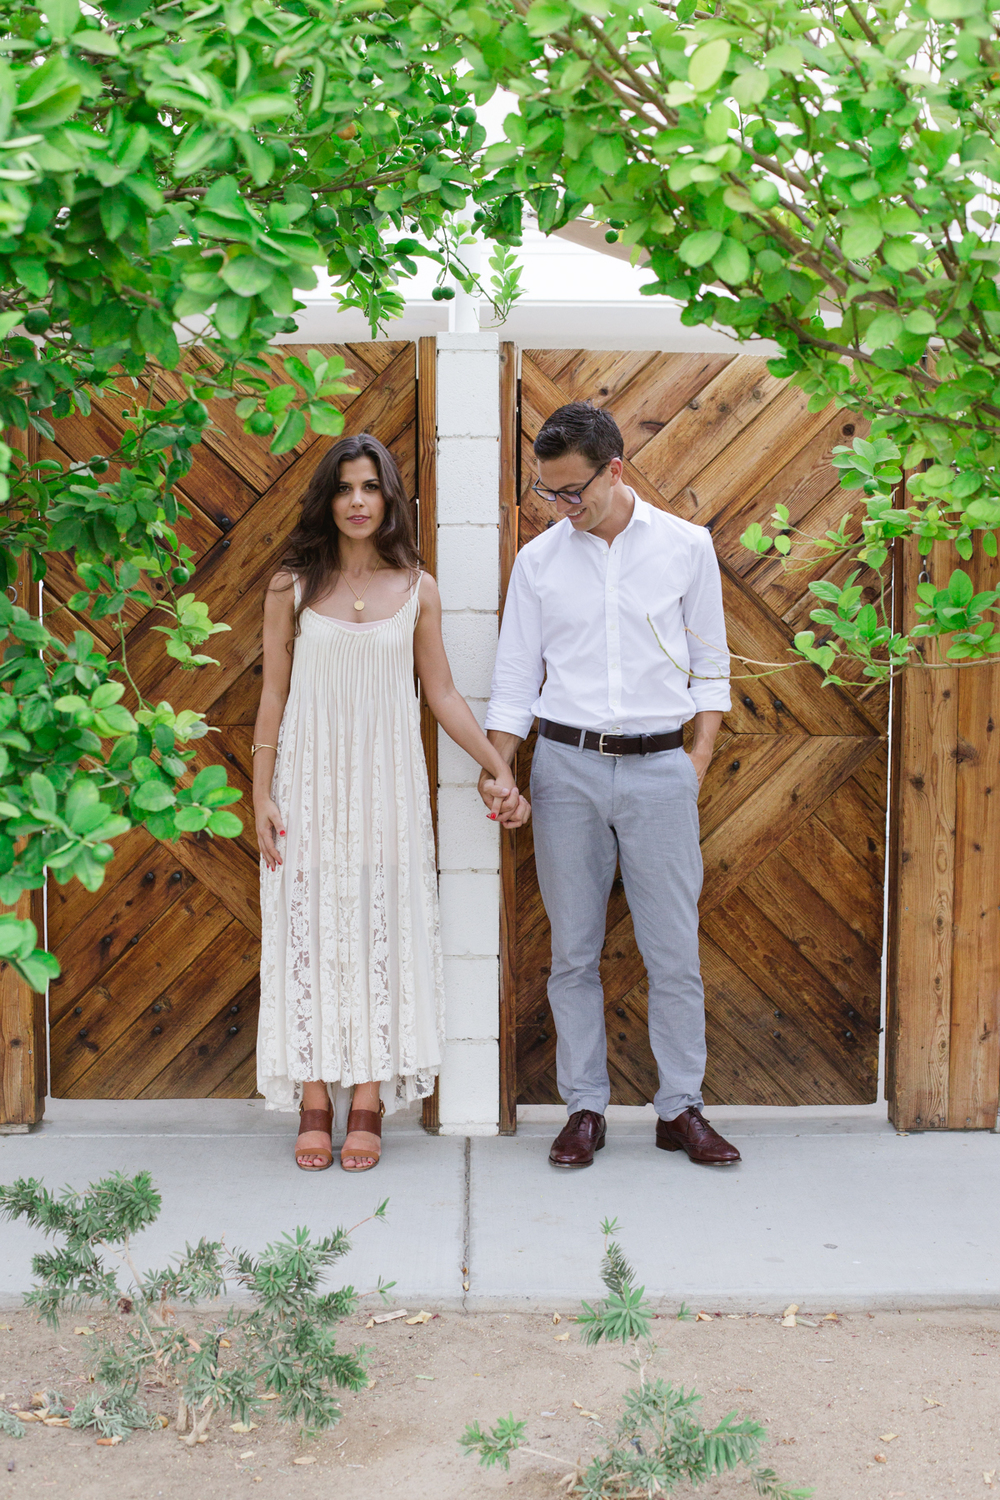 All_Days_Wonder_Palm_Springs_Engagement-33.jpg